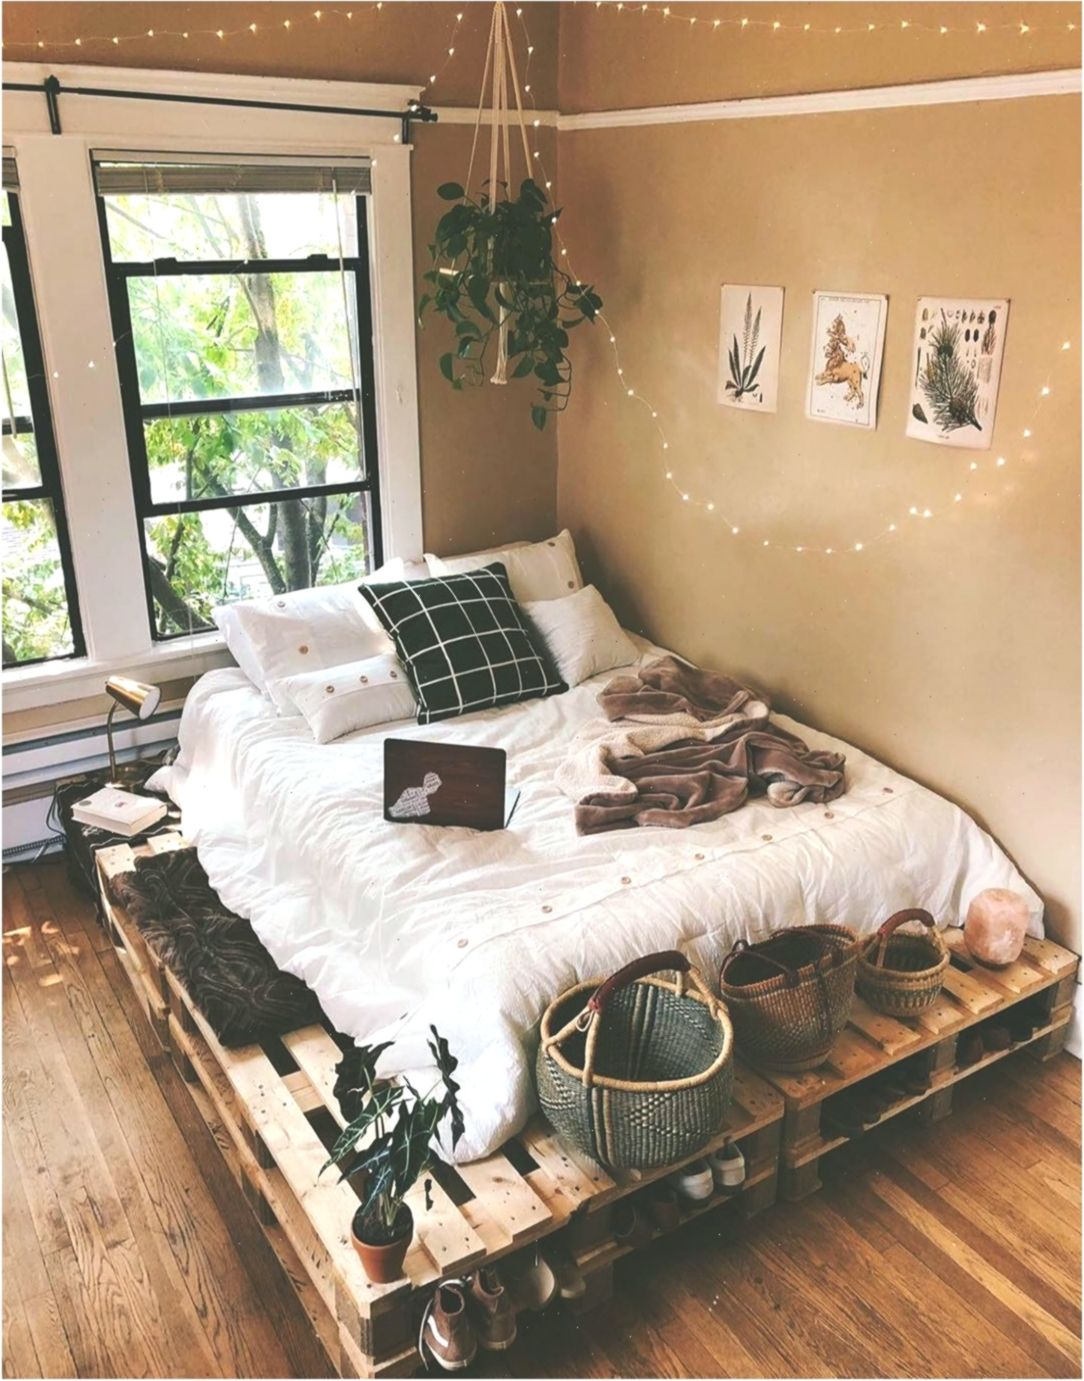 Bohemian Style Ideas For Bedroom Decor Schlafzimmerdekor Bedroomdecorbohemian Tumblr Bedroom Decor Bedroom Decor Cozy Bed In Living Room